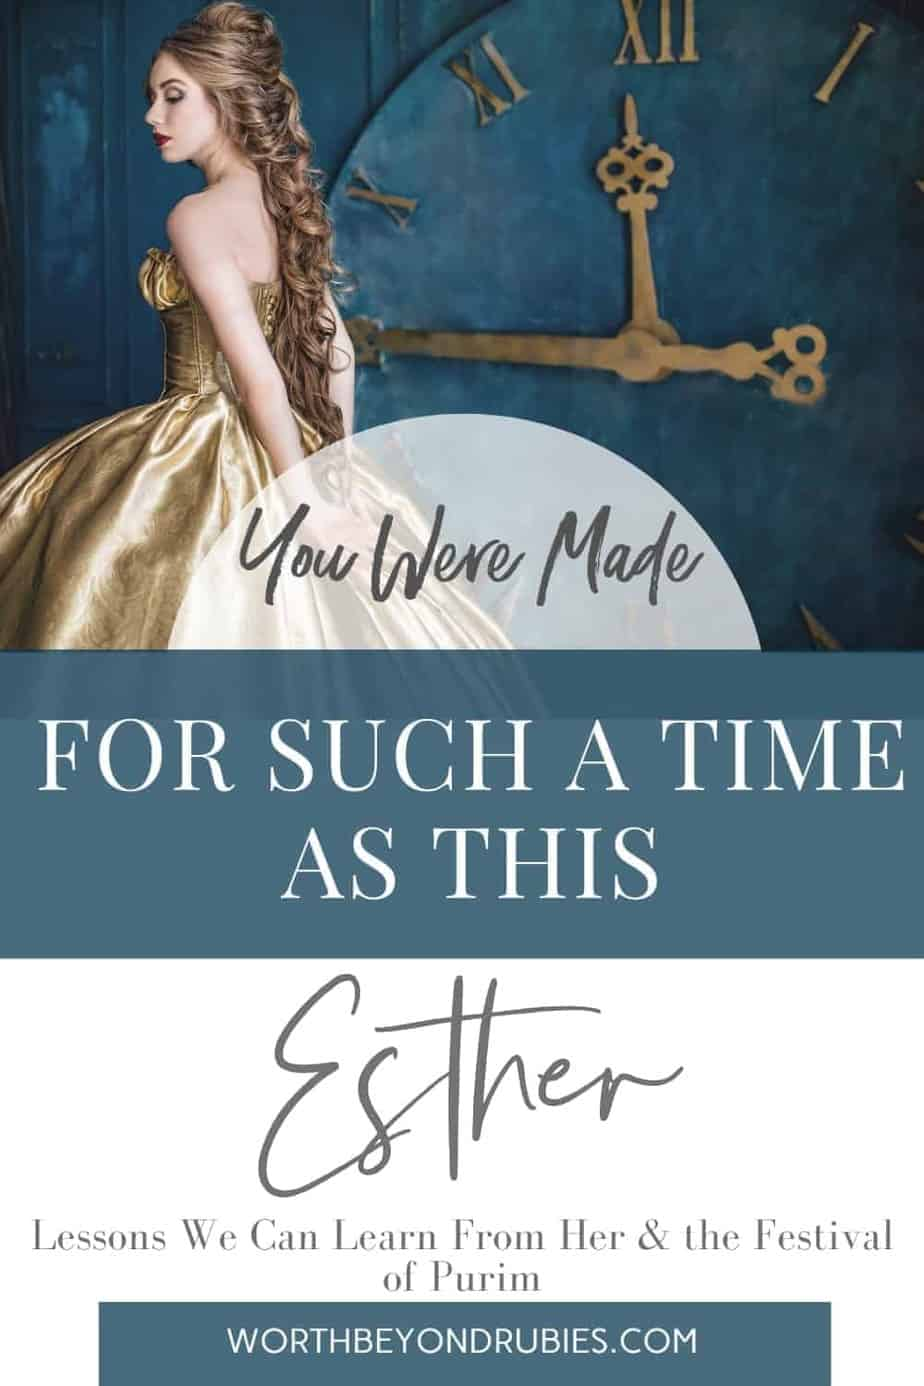 An image of a queen in a gold dress and long hair standing in front of a large blue clock with gold hands at 11:45 and text overlay that says You Were Made For Such a Time as This - Esther - Lessons We Can Learn From Her & the Festival of Purim